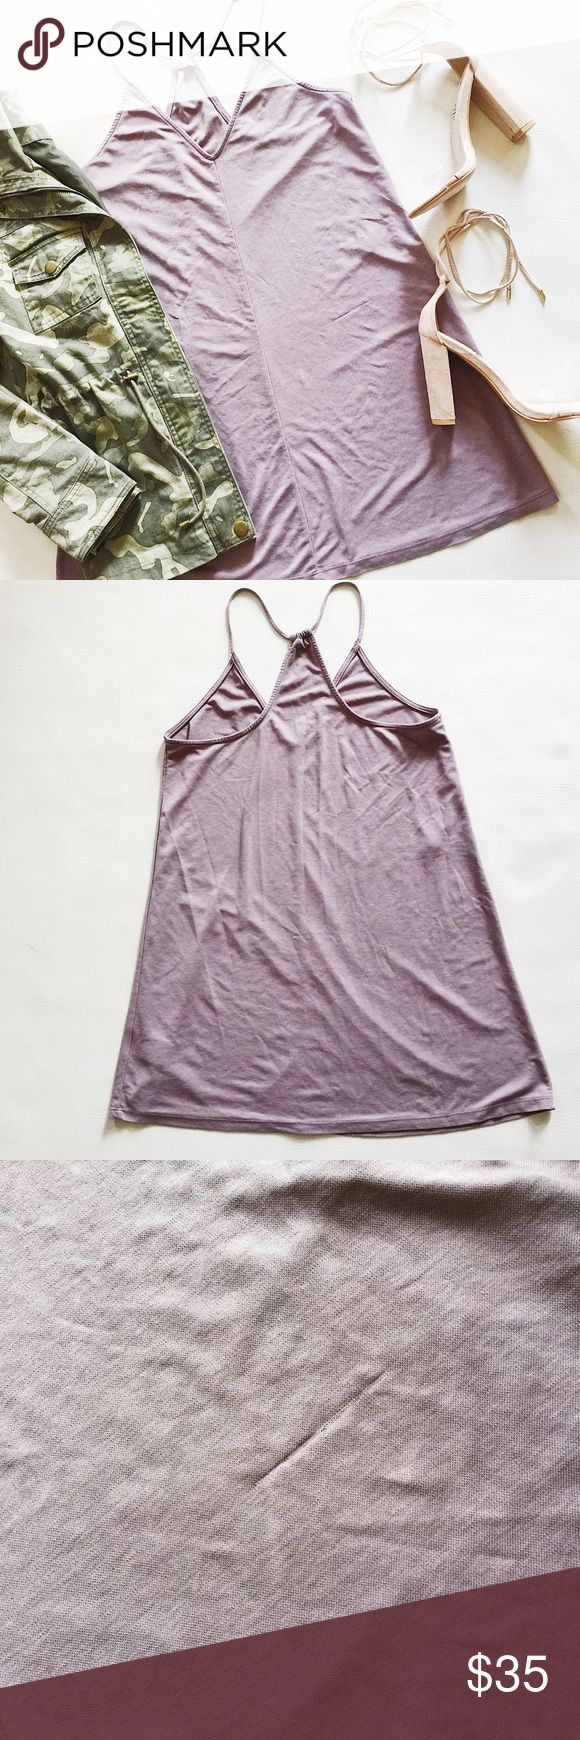 """- SALE - Silence and Noise Cupro Slip Dress Silence and Noise Cupro Slip Dress in lavendar.  Easy, pull on style.  Add a plain white tee underneath for a trendy spring look!  Hits mid-thigh, not quite as short as stock photo model.  Pre-loved but in great condition.  Small snag on front.  No other holes, stains or tears.  - SALE! $33 marked down to $26! -  Measurements laying flat: Armpit to armpit: 18"""" Waist (across): 20"""" Total length: 33"""" silence + noise Dresses"""